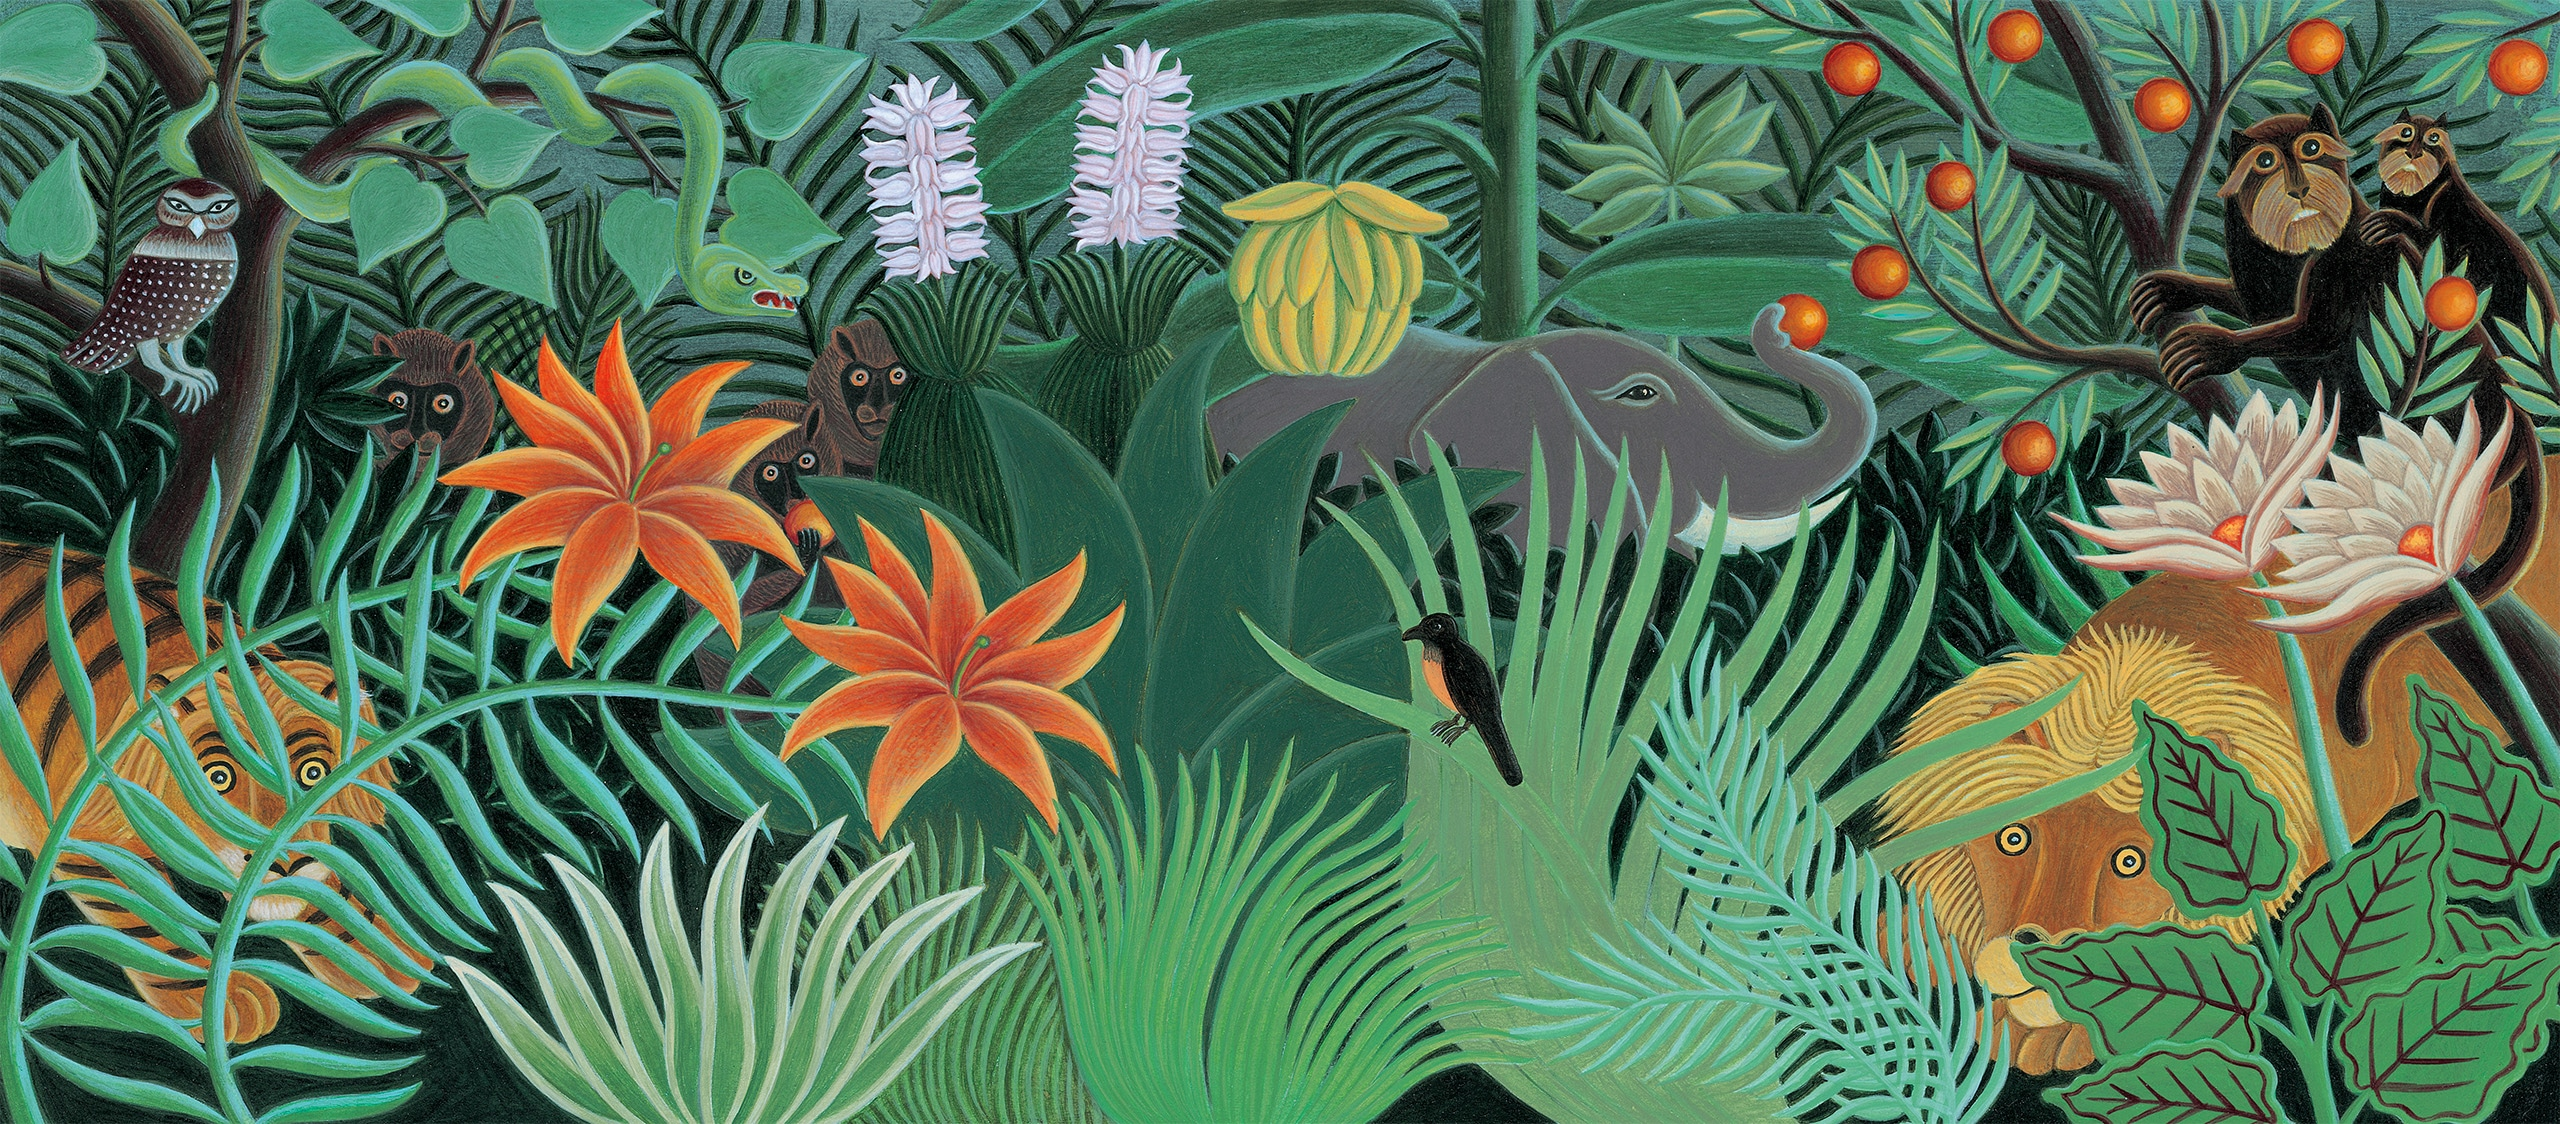 The Fantastic Jungles of Henri Rousseau Gallery. 'Banner Image'